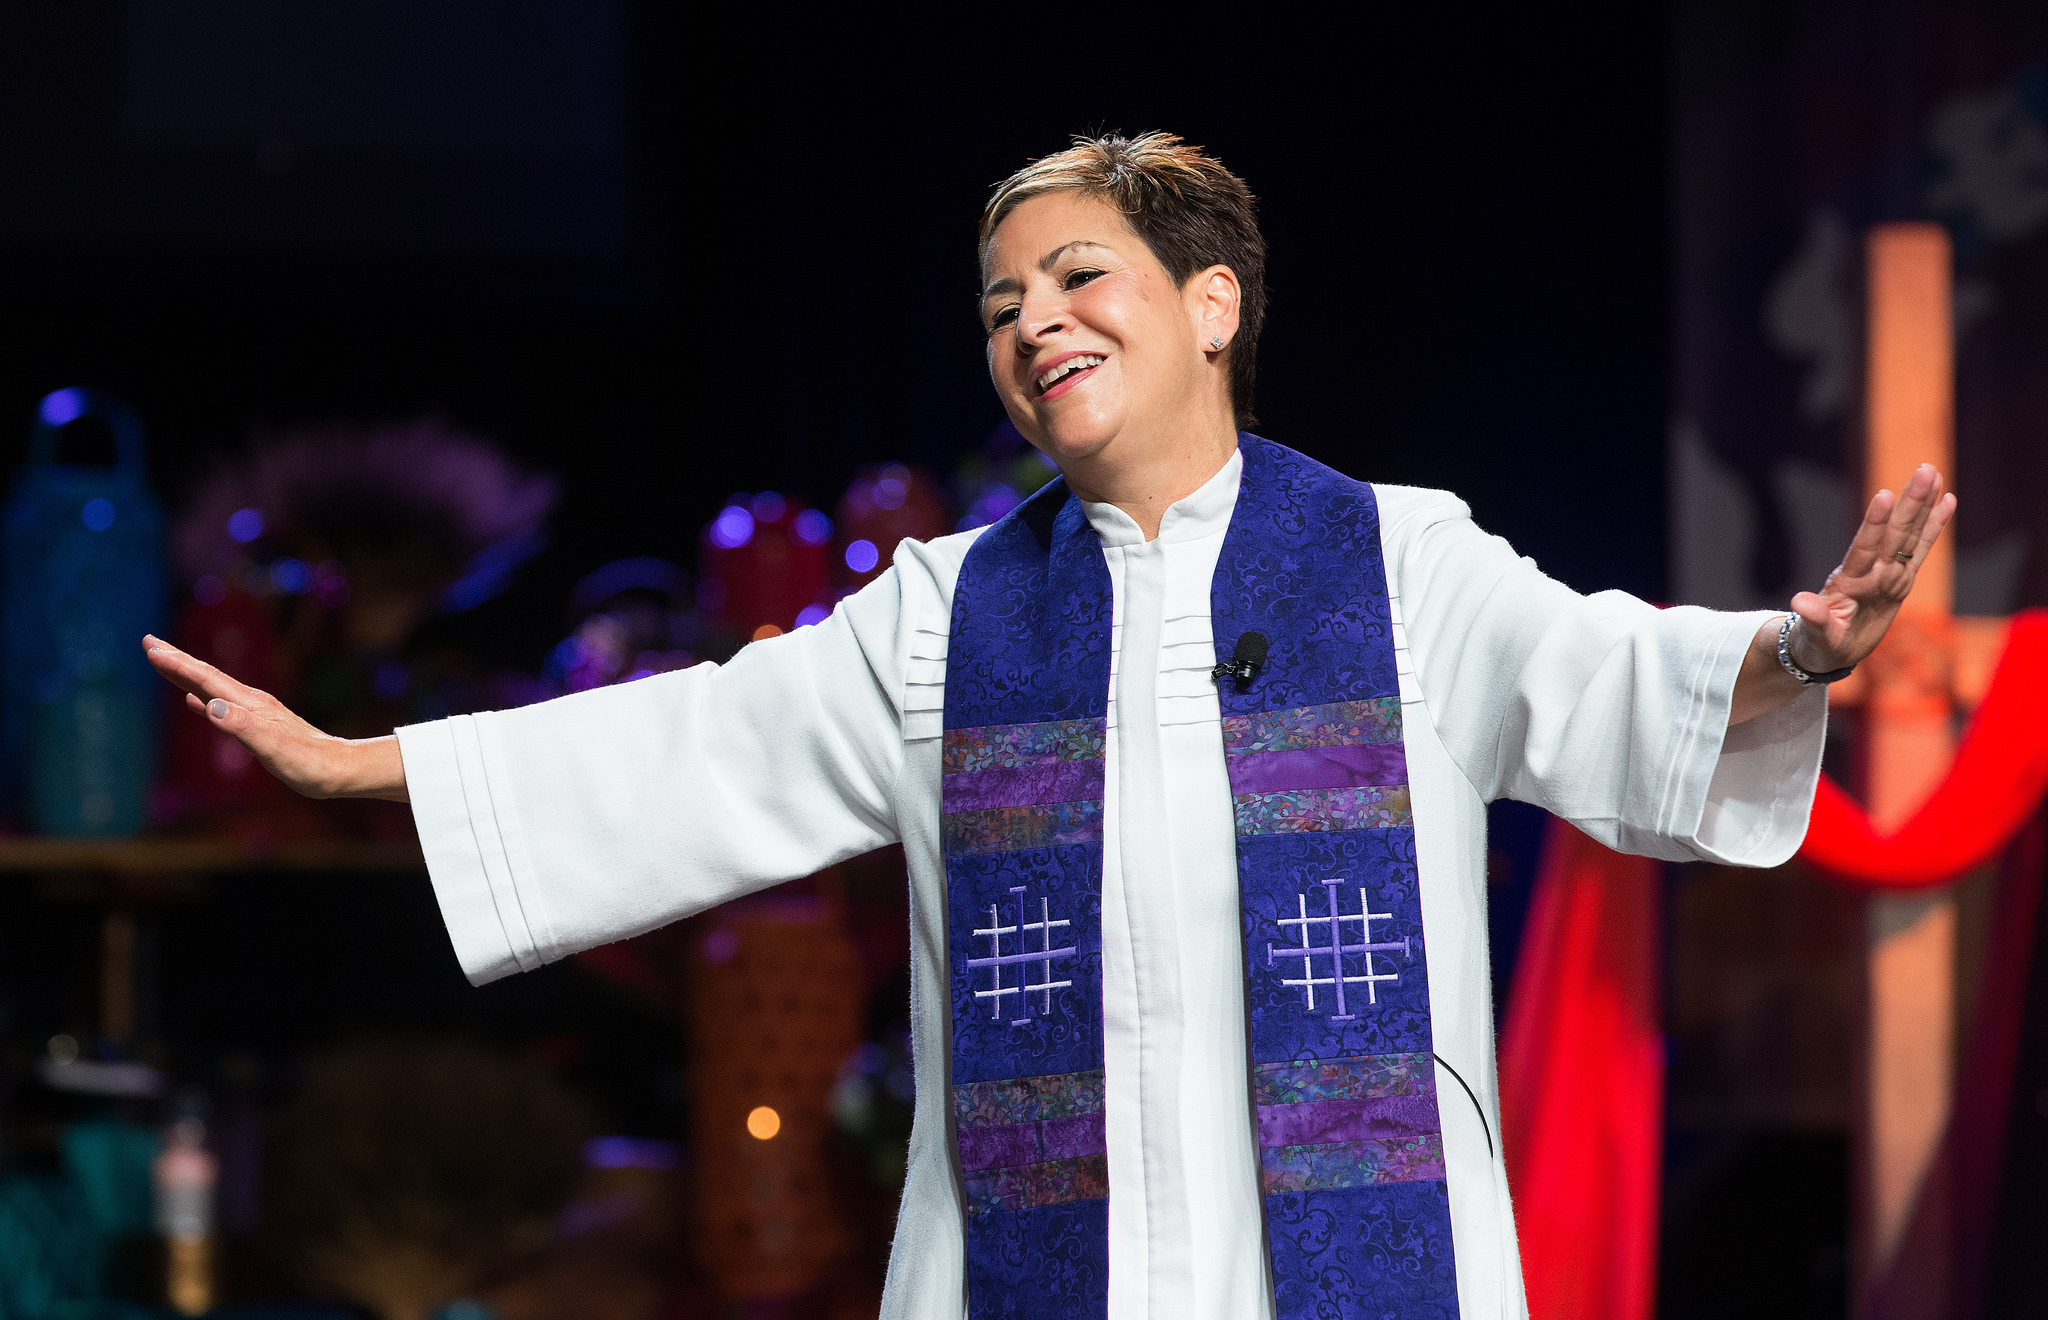 Bishop Cynthia Fierro Harvey is the Resident Bishop of the Louisiana Area in the South Central Jurisdiction of The United Methodist Church.